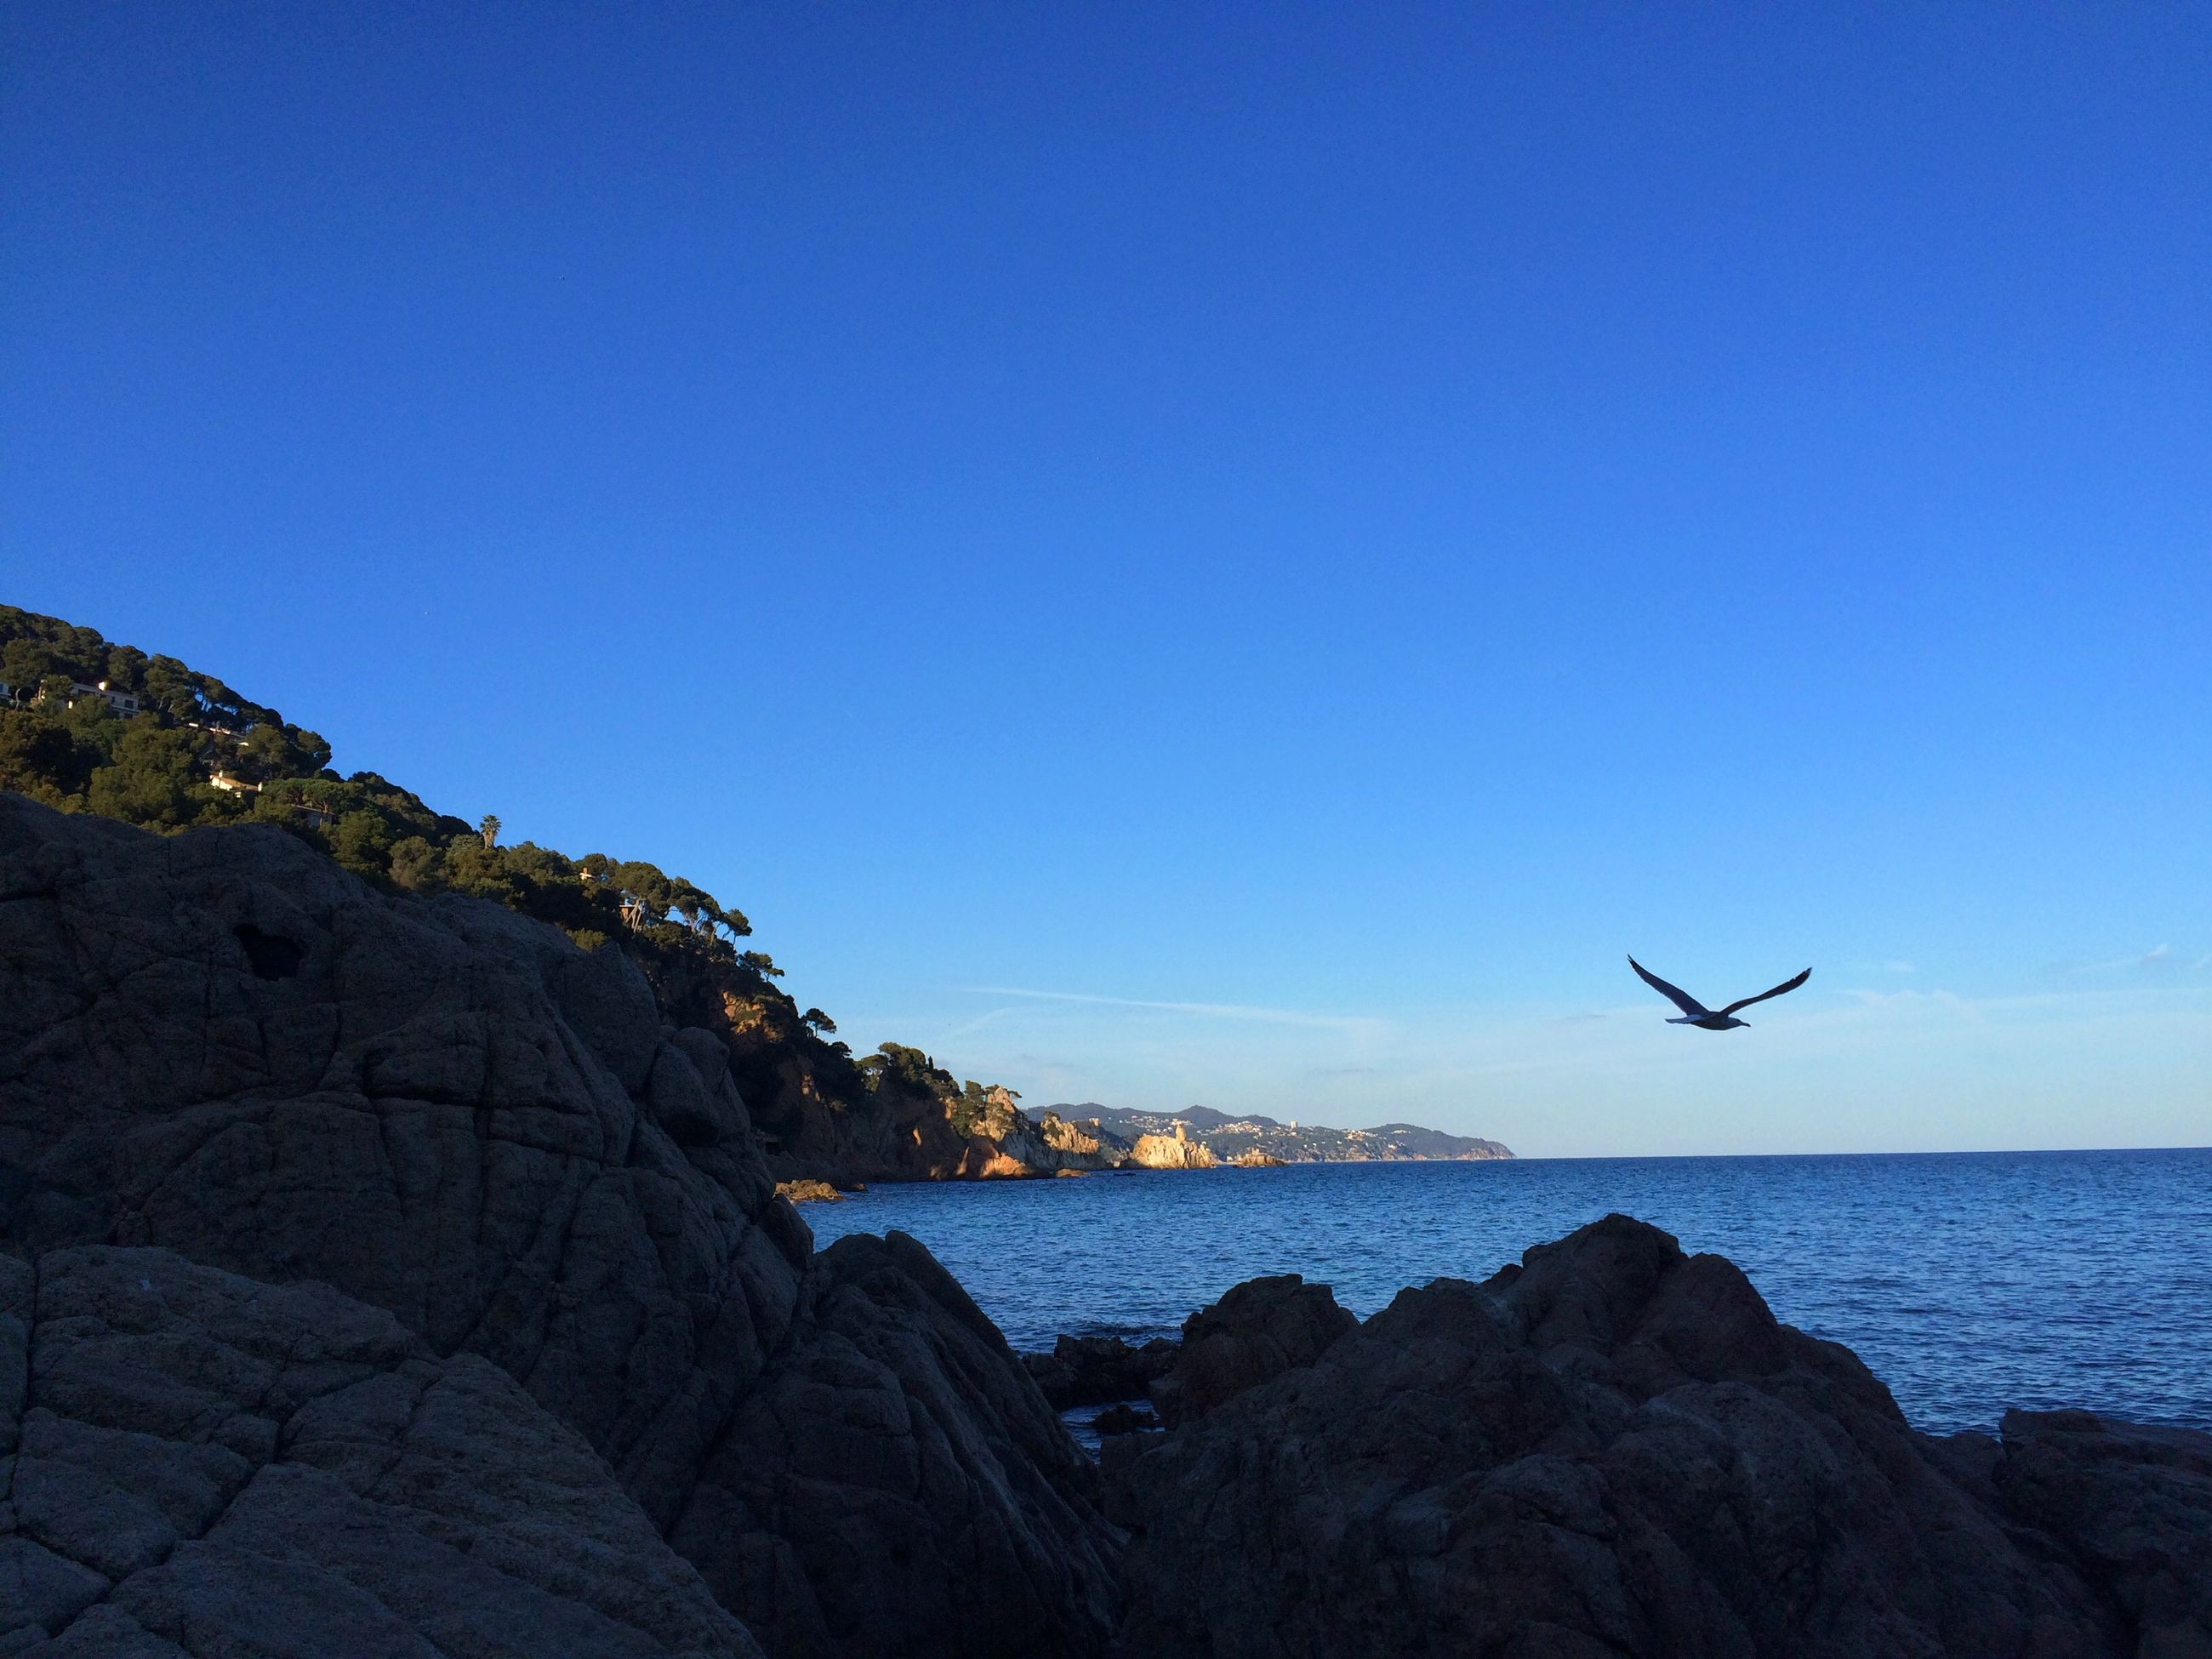 sea, water, blue, horizon over water, flying, copy space, clear sky, scenics, bird, beauty in nature, tranquil scene, rock - object, tranquility, nature, silhouette, sky, rock formation, mid-air, rock, wildlife